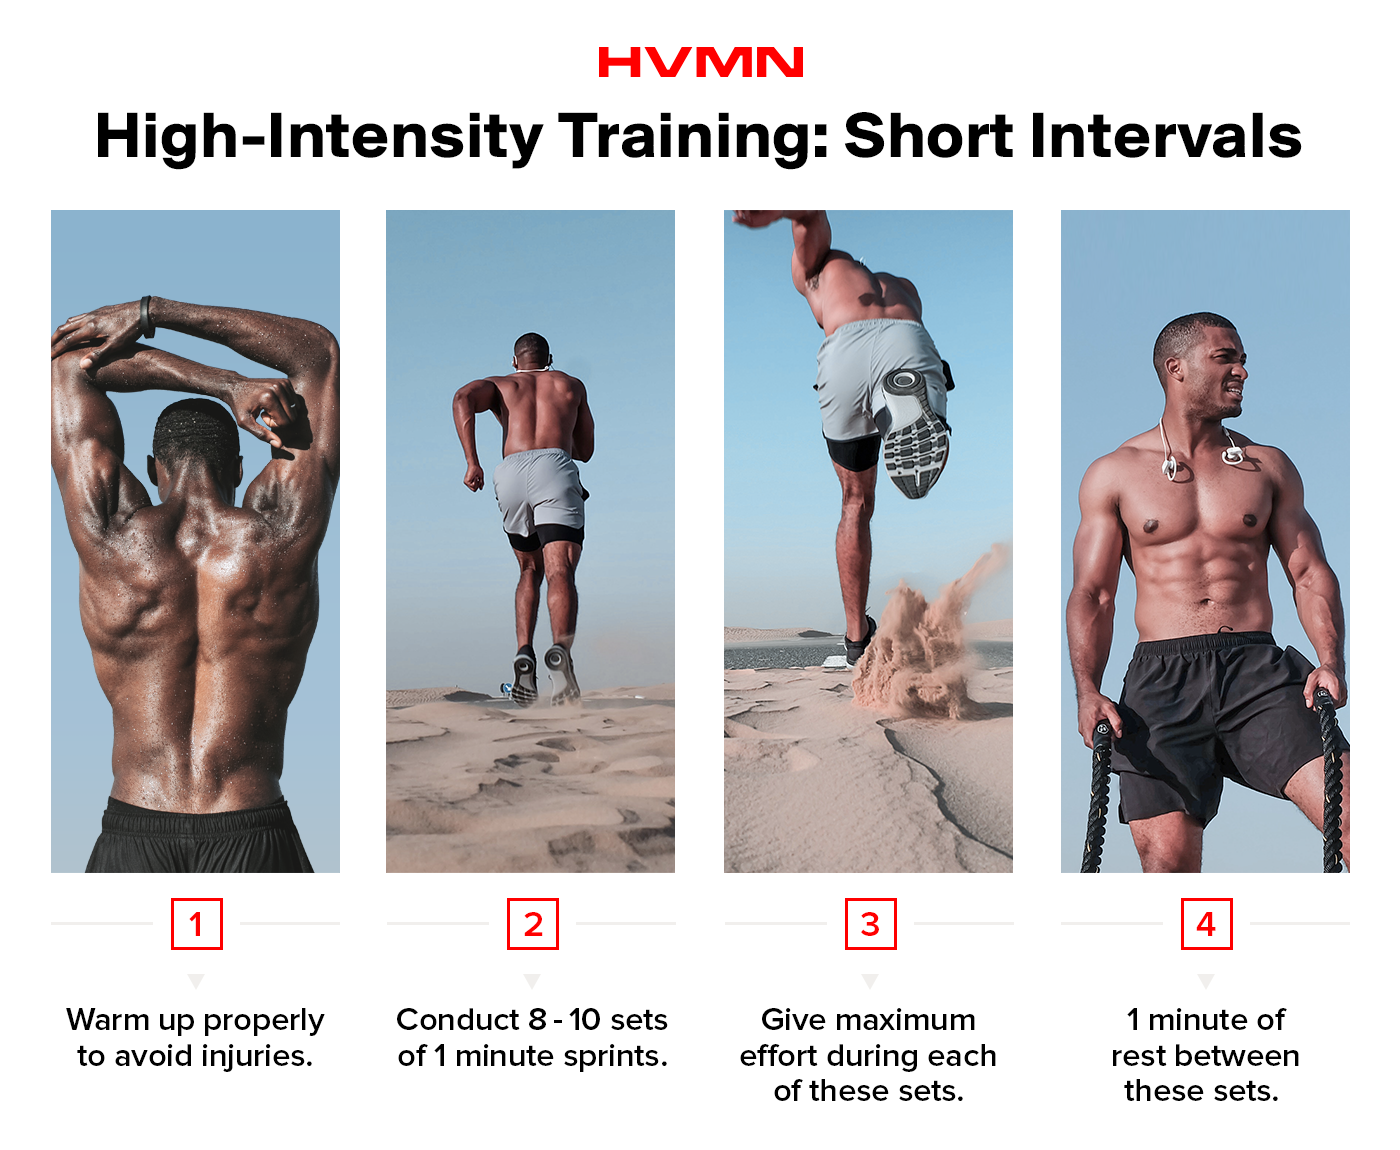 A high-intensity guide to increasing VO2 max with short intervals. A male runners shows these steps, which include short sprints with short rests in between.